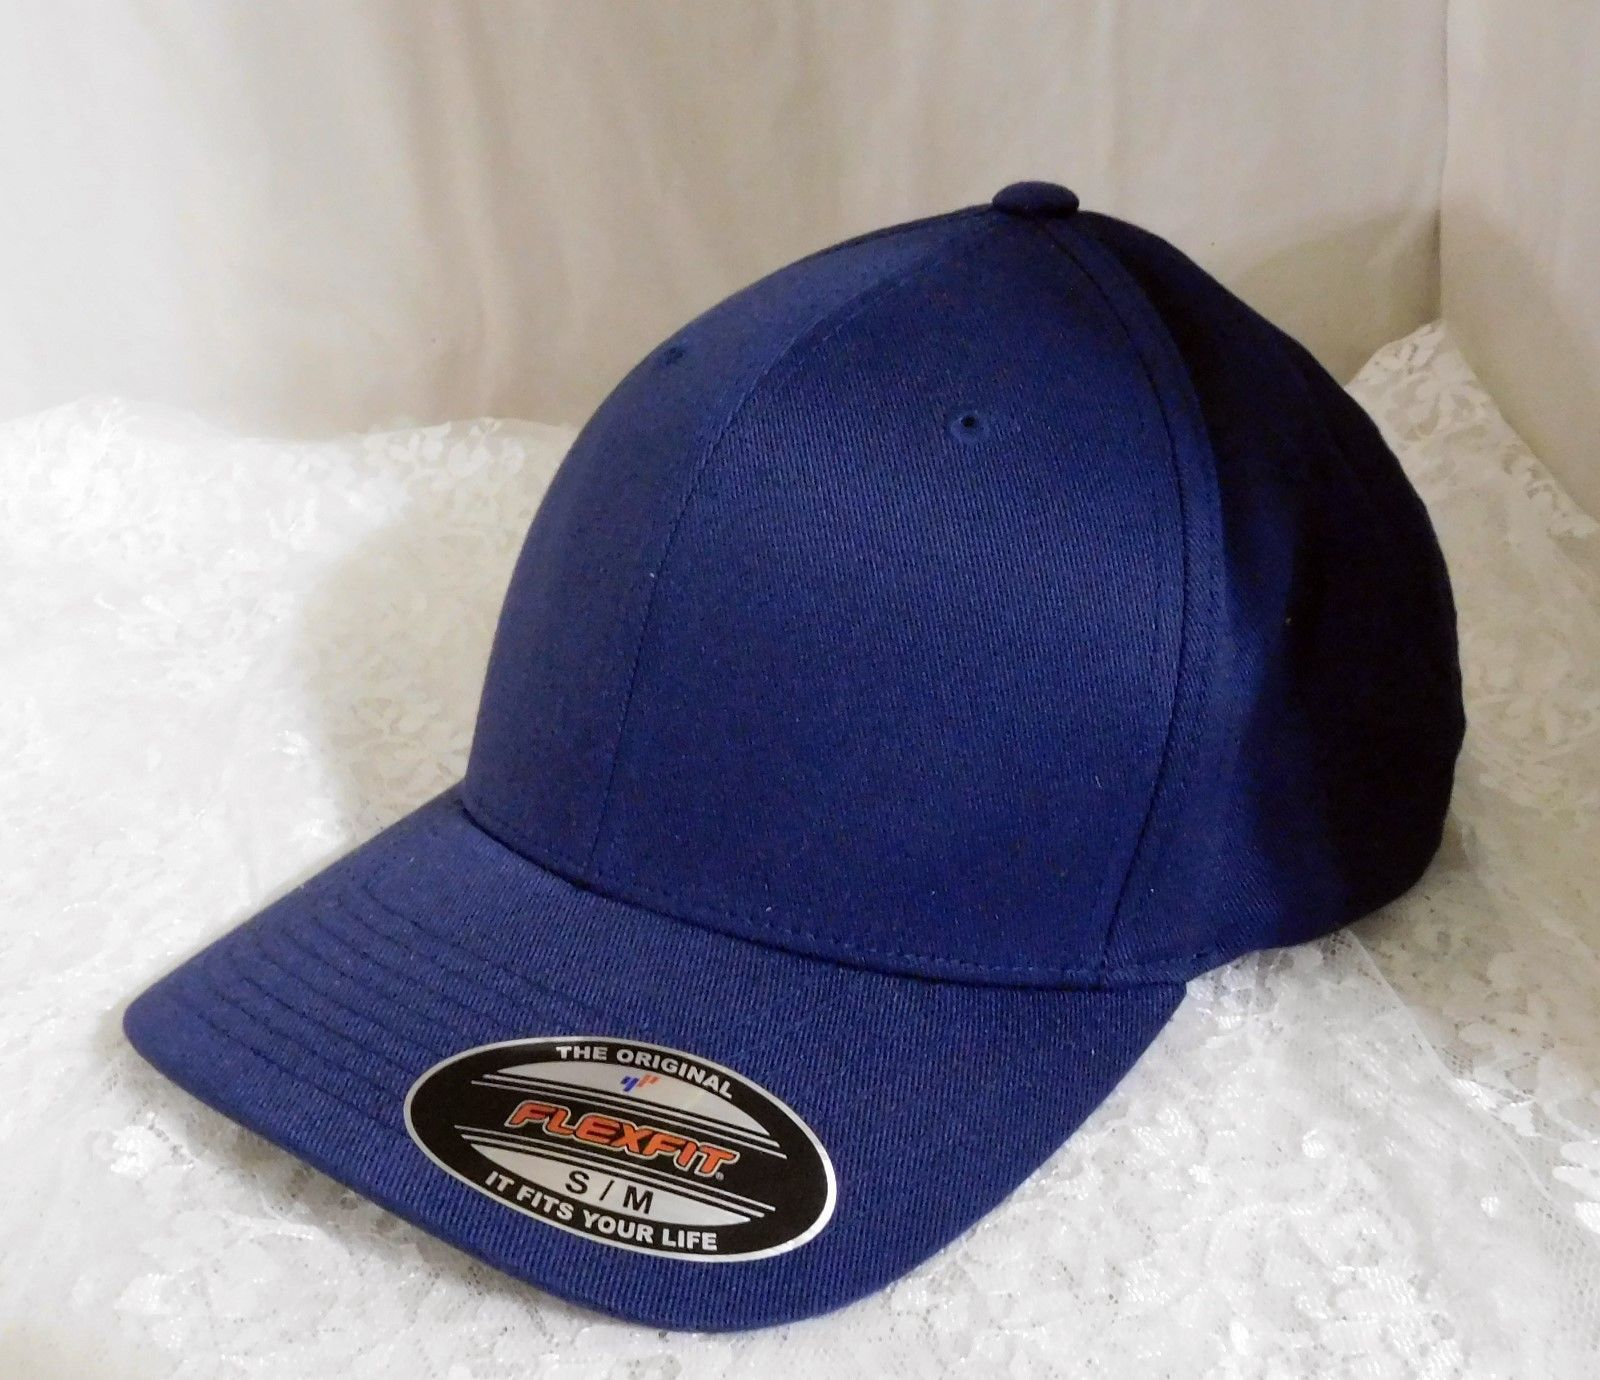 Decky Plain Fitted Cap Navy Size 7 1//2 Brand New Free P/&P UK Seller